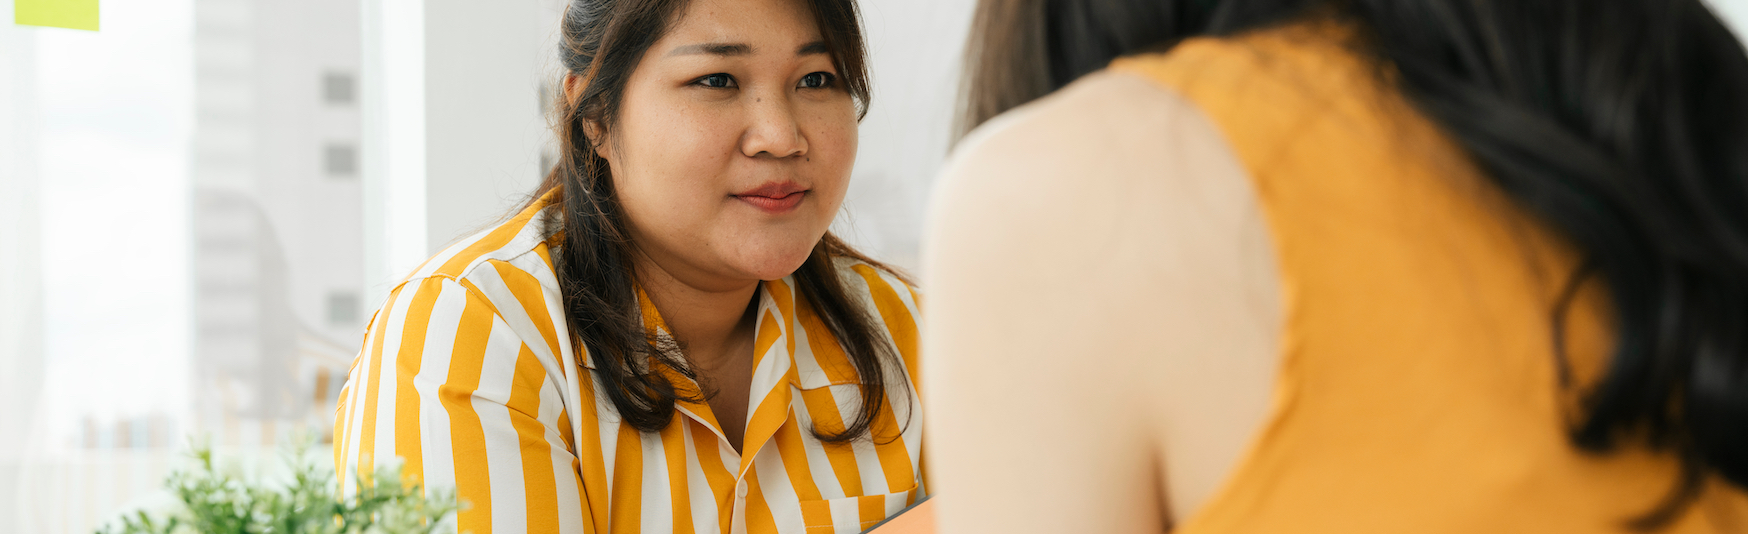 LP_Header-1748x534-overweight-plus-size-Asian-women-meeting-with-coworker copy